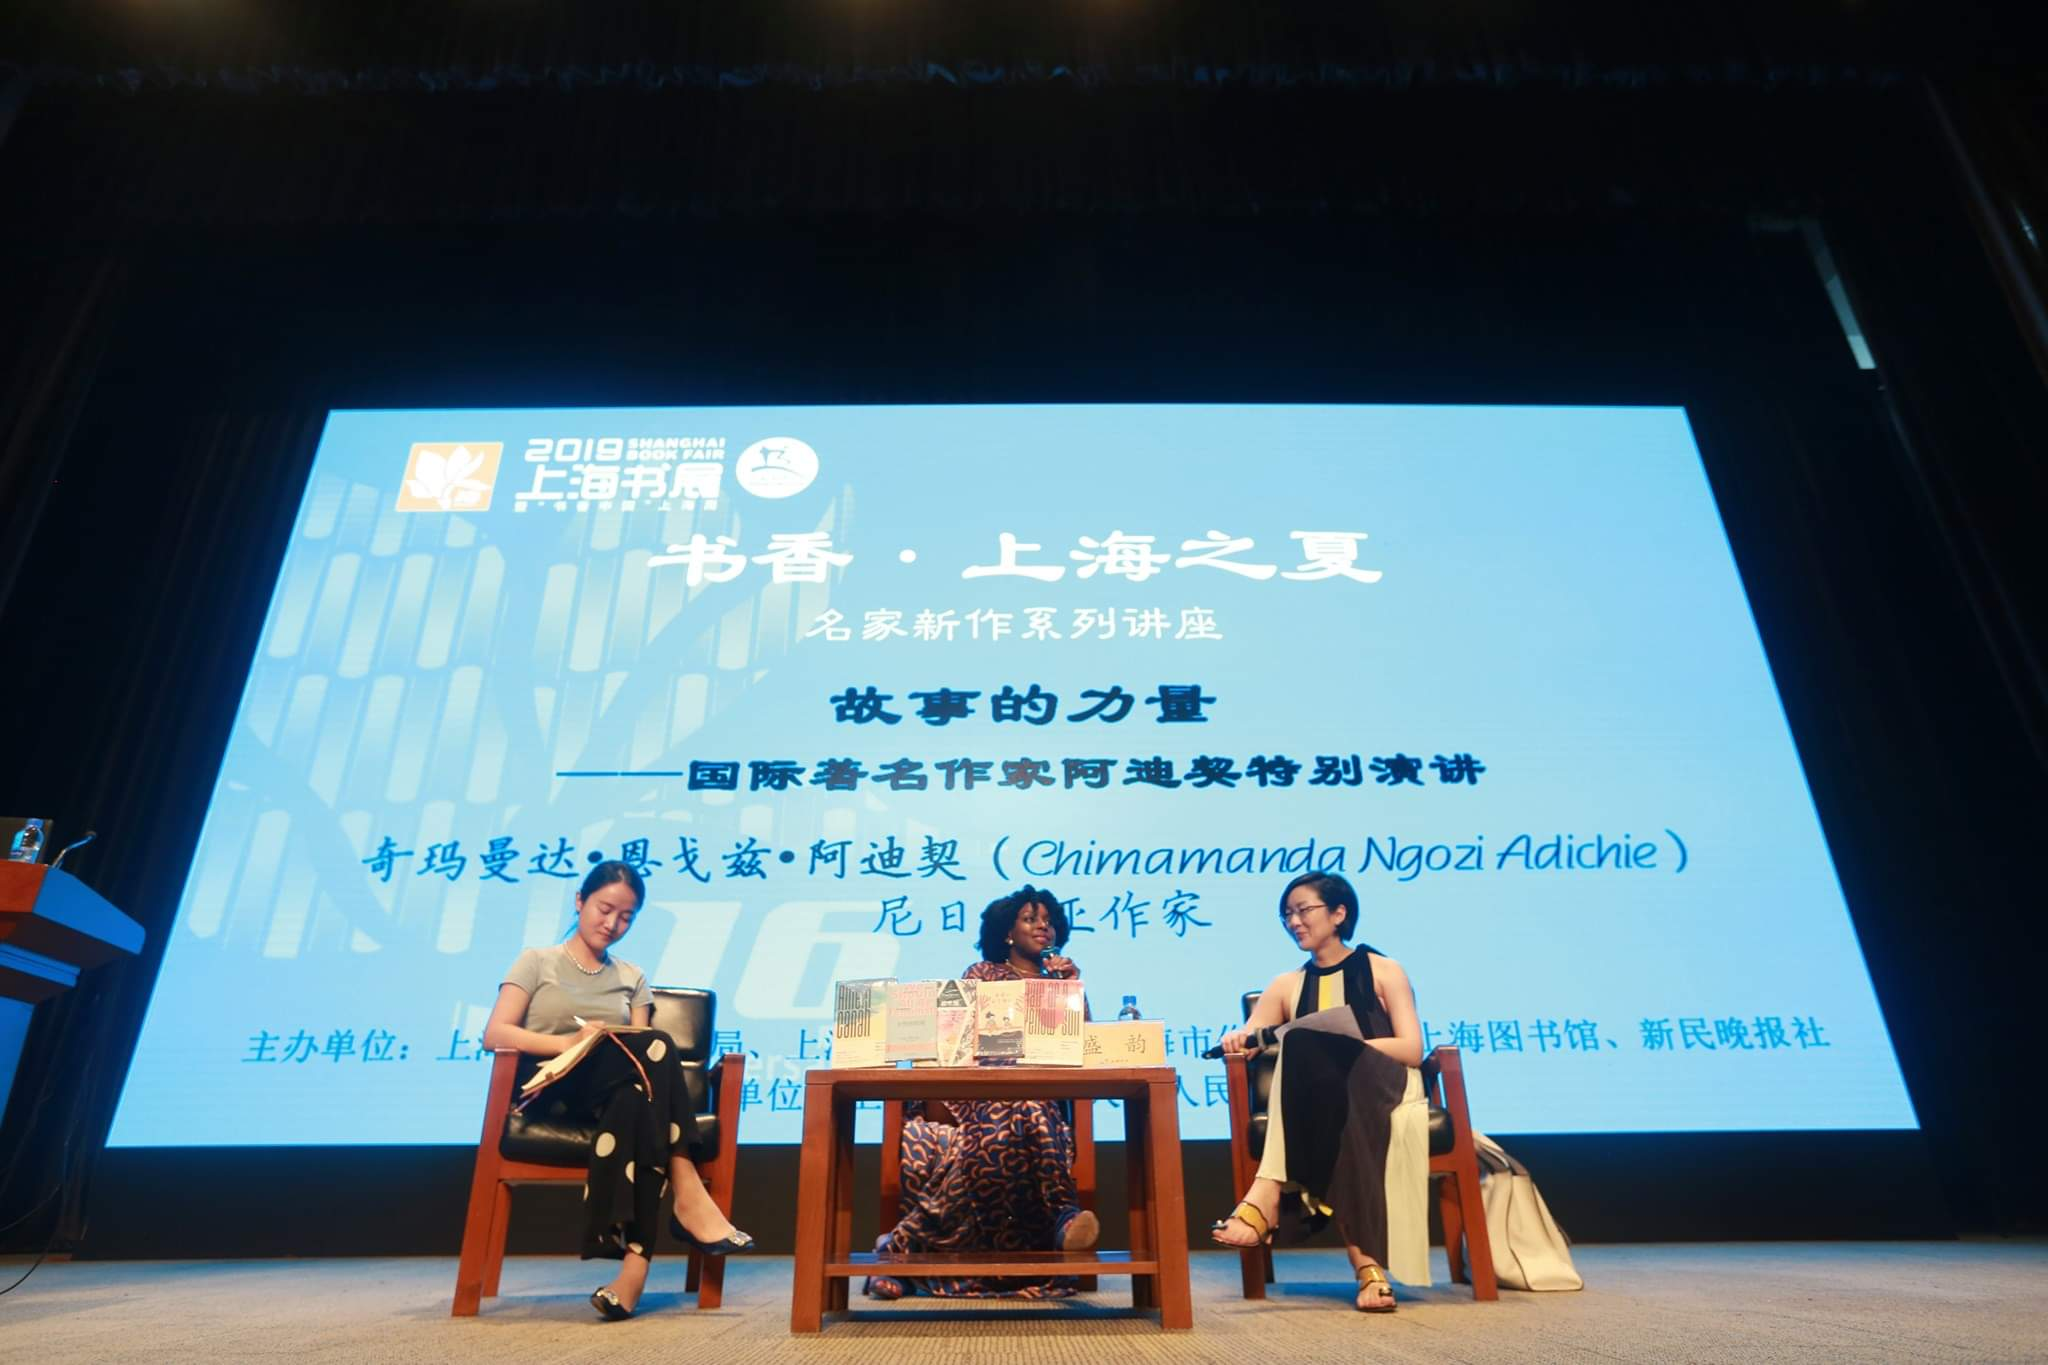 Chimamanda Ngozi Adichie attends Shanghai Book Truthful, Gives Public Lecture